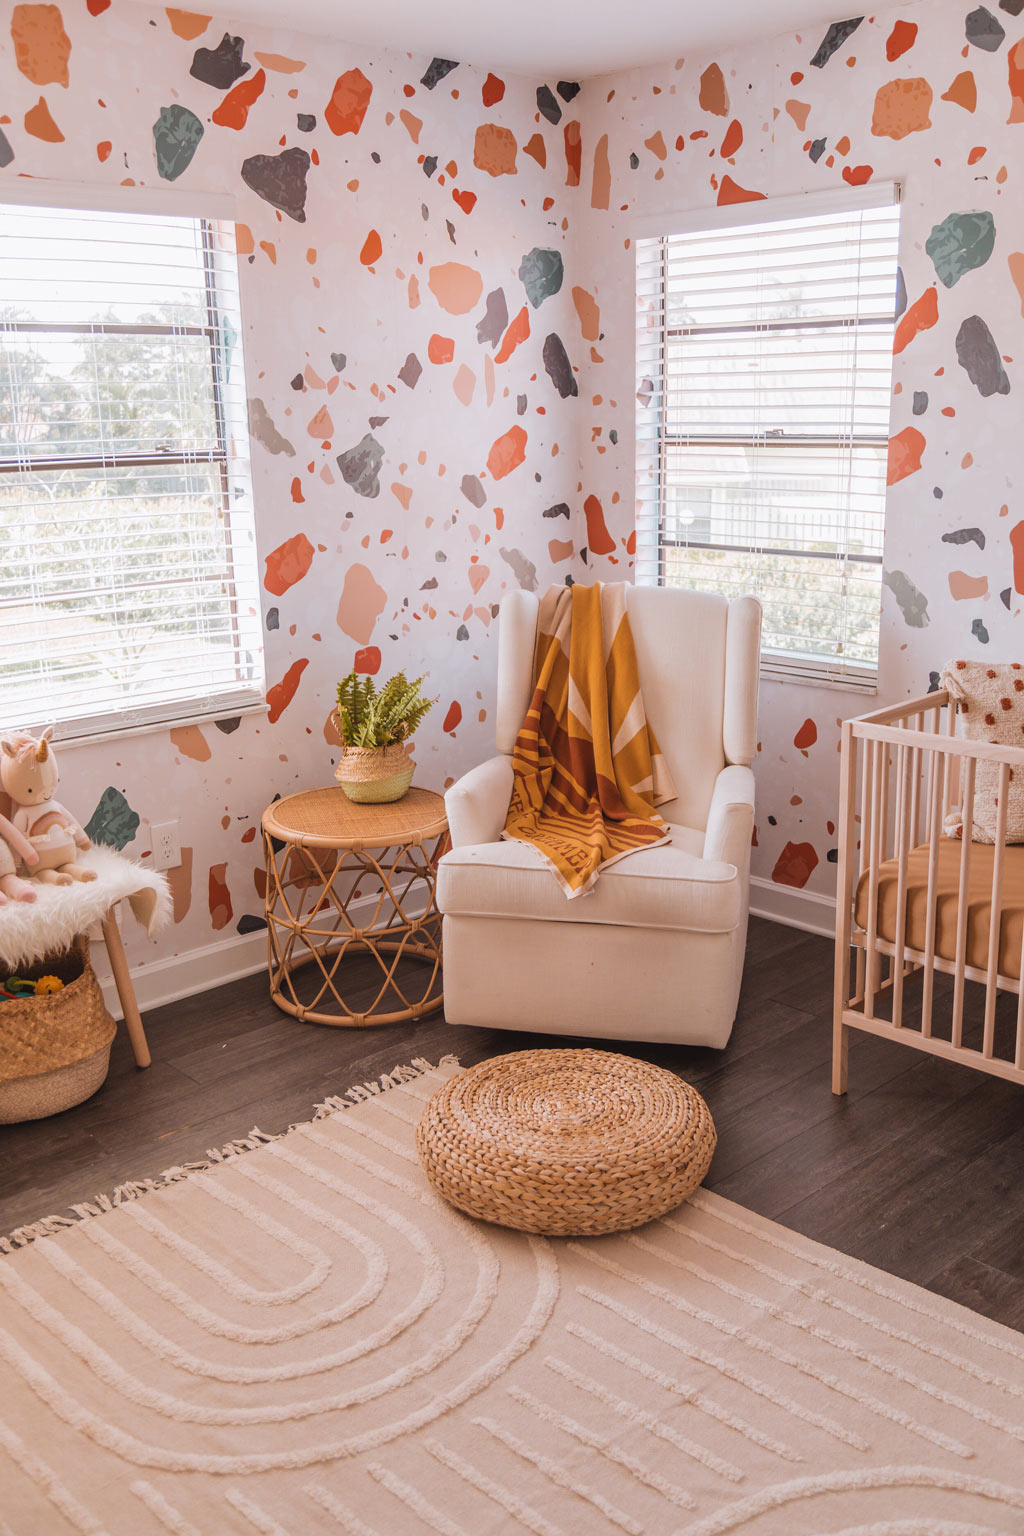 Modern coastal bohemian style baby girl nursery interior design with warm tone terrazzo removable wallpaper and light wood furniture